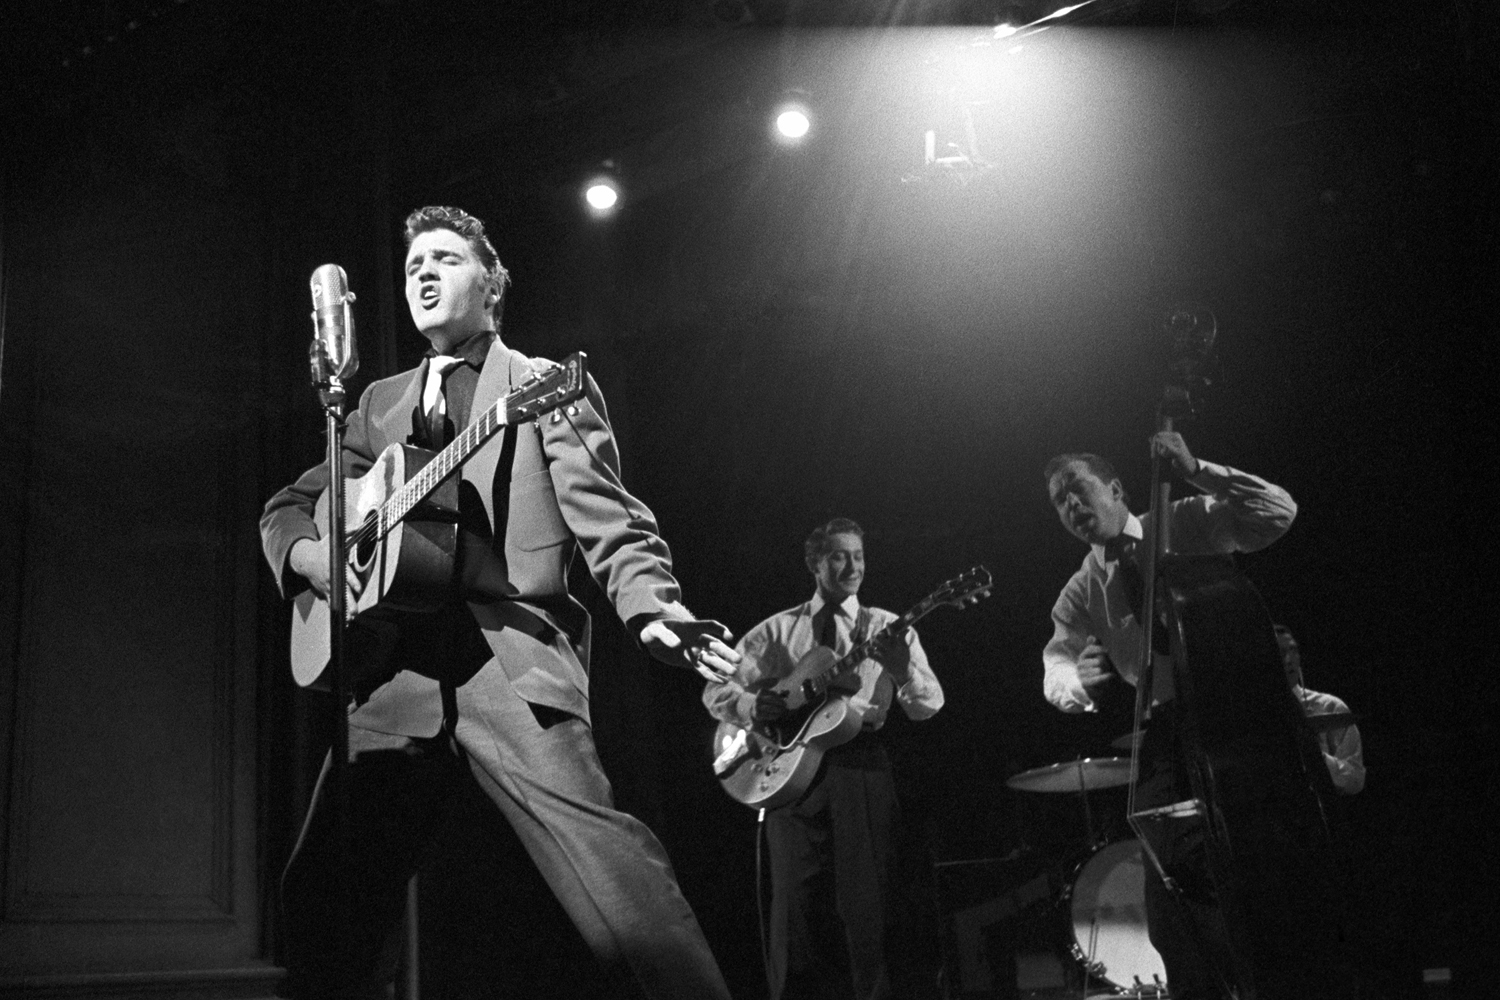 March 17, 1956. Studio 50 in New York. This image became a Swedish postage stamp, representing the 50th anniversary of Rock and Roll. This is the performance on the Dorsey Brothers 'Stage Show.' In the background is Bill Black on bass, Scottie Moore on guitar and, hidden behind the bass, DJ Fontana on drums.